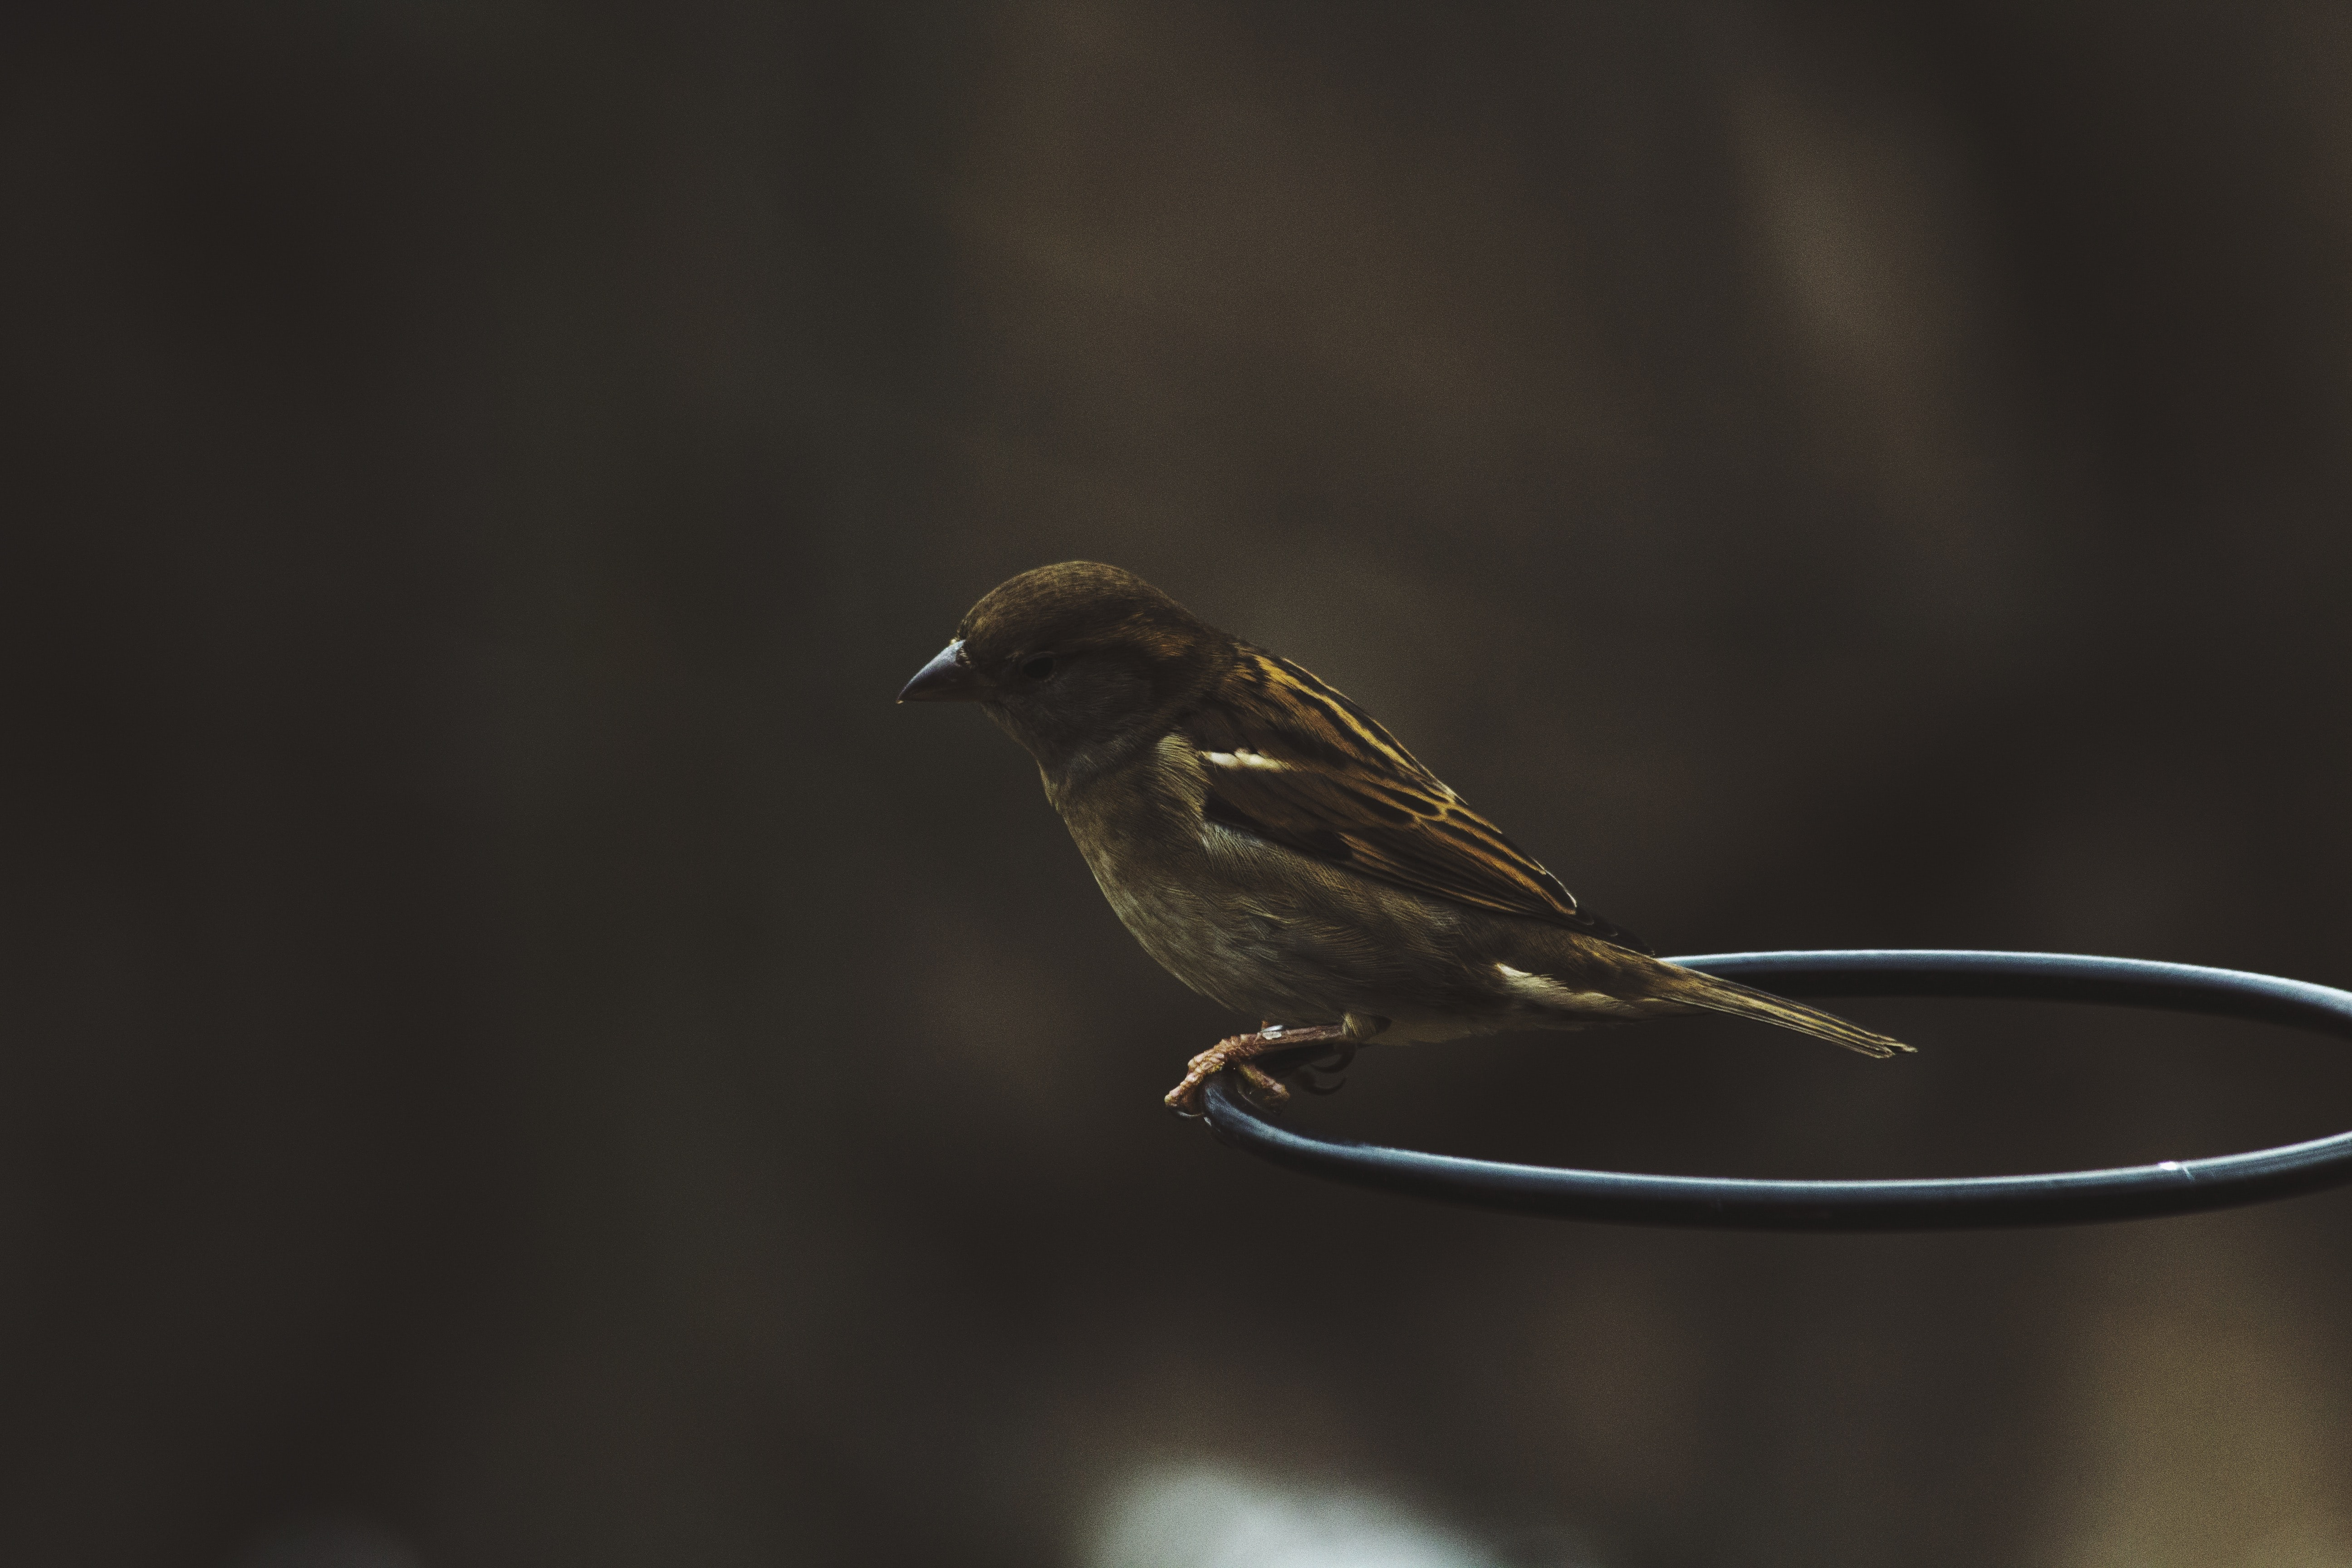 Bird perched on the edge of a hoop